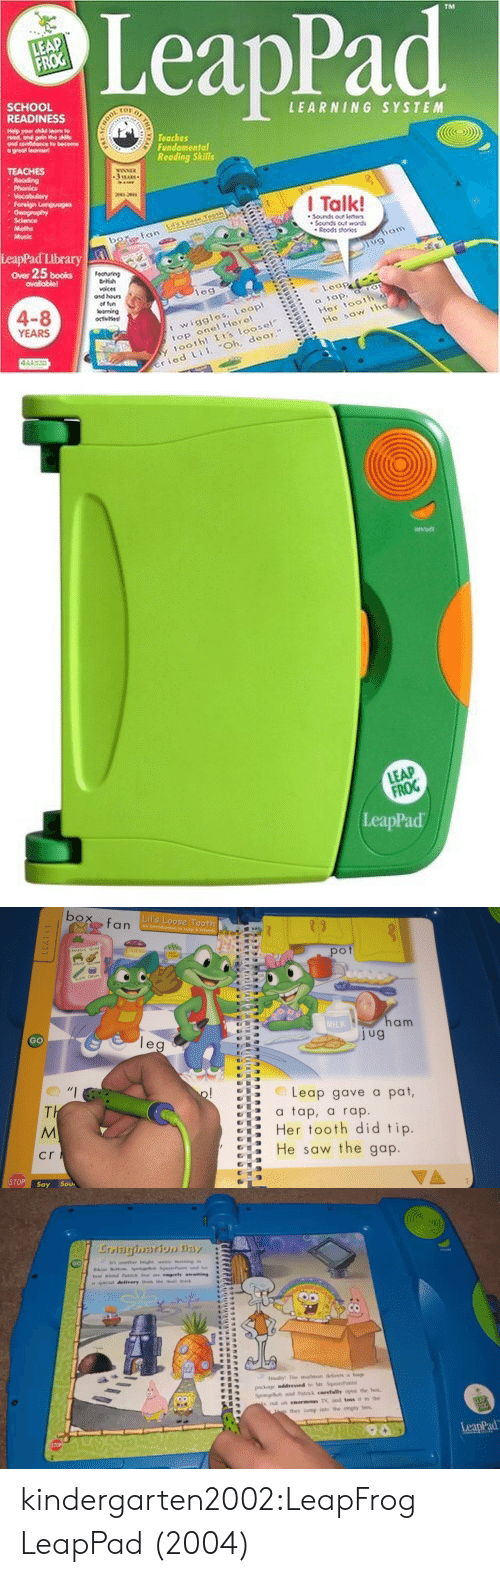 toss it: LeapPad  SCHOOL  READINESS  LEARNING SYSTEM  Teaches  Fundomental  Reoding Skills  Phonic  I Talk!  Sdance  Rodt eries  LeapPad Library  ower 25 books  ovailabiel  les  4-8  YEARS  t wiggles, Loap  op onel Herel  oothl Is loosel  Hes toot  Ho sow tt  ried i Oh, deor8   LEAP  FROG  eapPad   Lil's Loose Tooth  pot  MuSic Quiz  MiL  am  GO  Leap gave a pat,  tap, a rap.  Her tooth did tip  He saw the gap  cr  STOP! say Sou   GO  a special delivery hom the mail tnack  Finally The mailman delivers huge  SpongeBob and Patrck carefully open the hox.  e out an enormous TV, and toss it in the  they jump into the empty box  LeapPad kindergarten2002:LeapFrog LeapPad (2004)